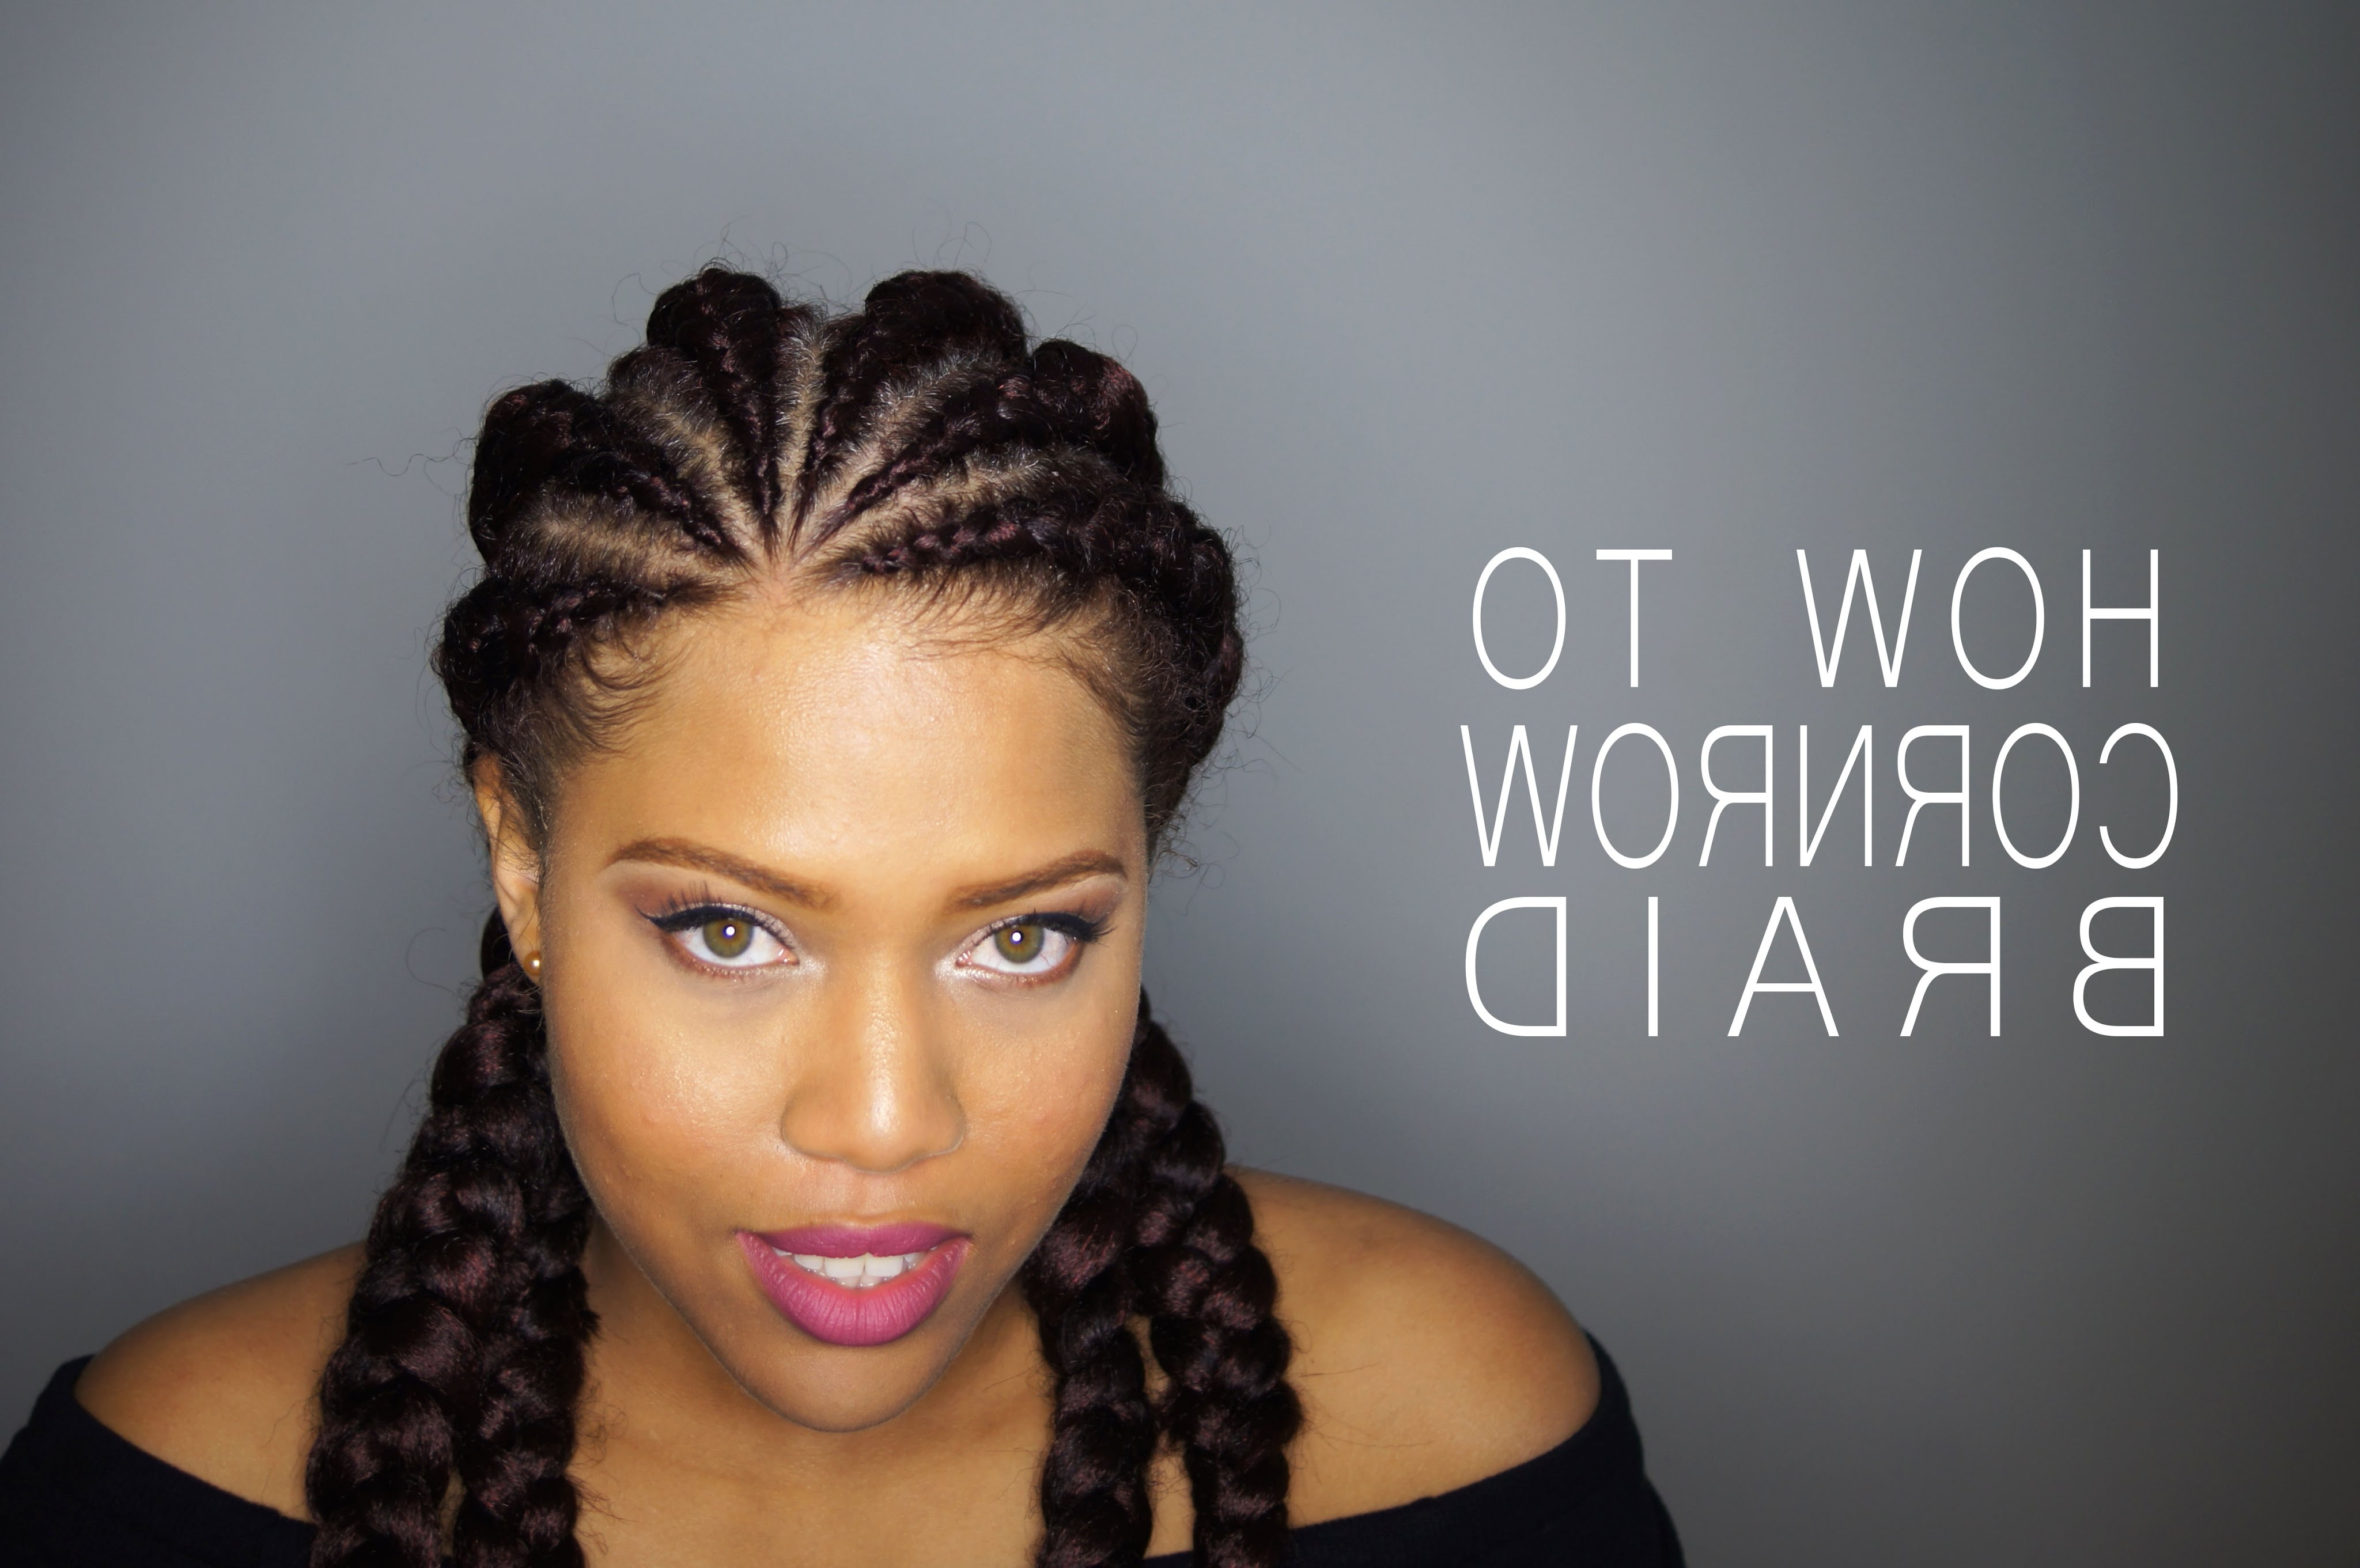 How To Cornrow Or Dutch Braid Your Natural Hair // Samantha Pollack For Most Up To Date Cornrows Braid Hairstyles (View 9 of 15)